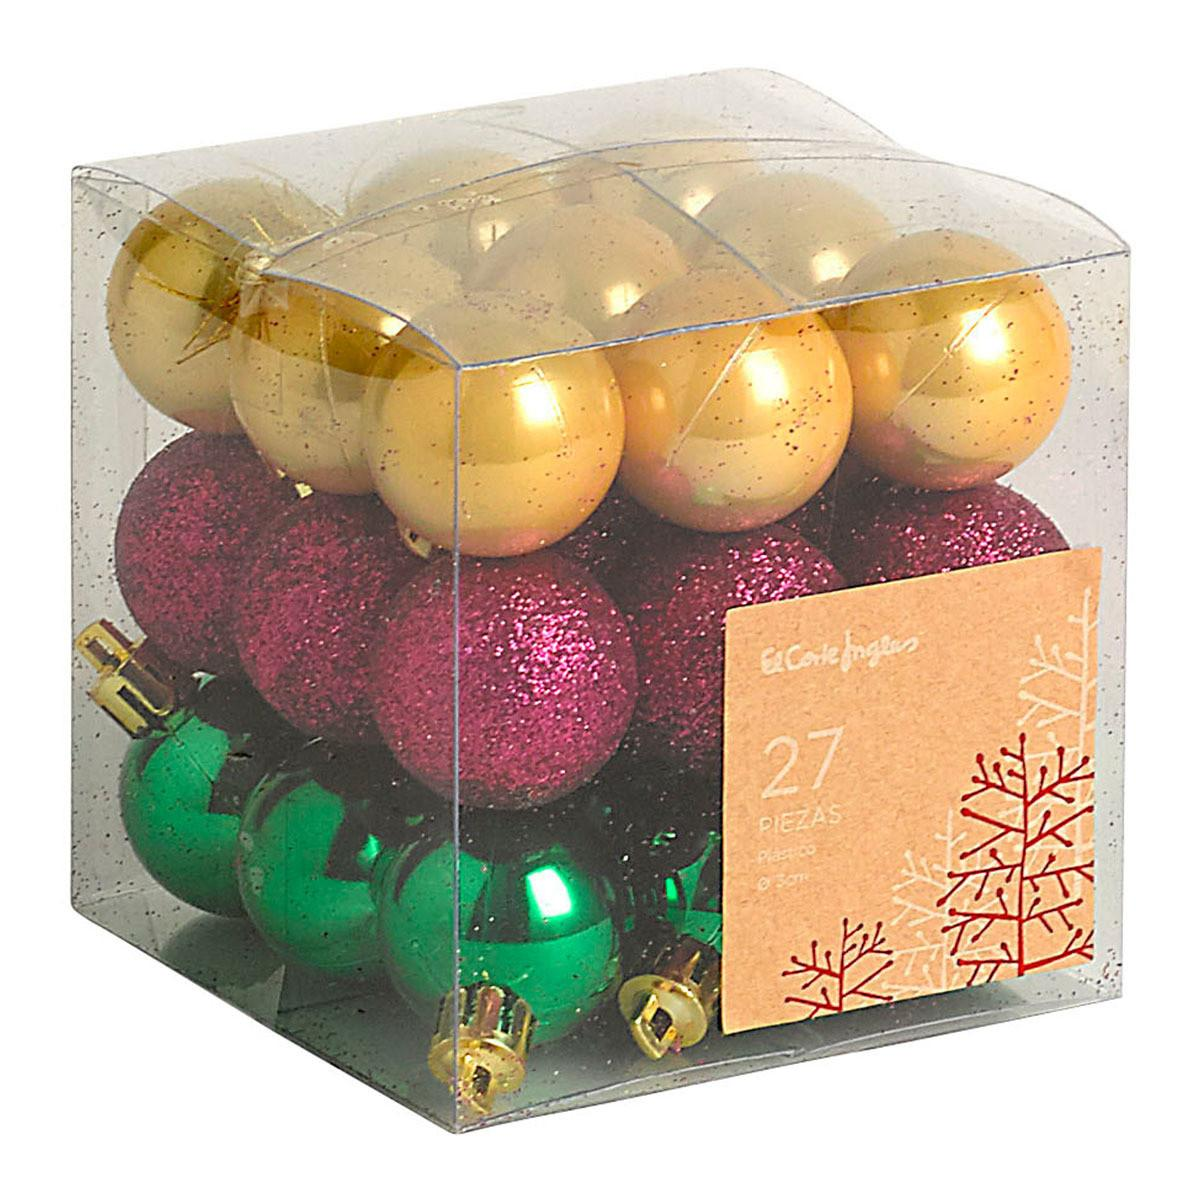 Corte Ingl Sparkling Set Christmas Tree Baubles